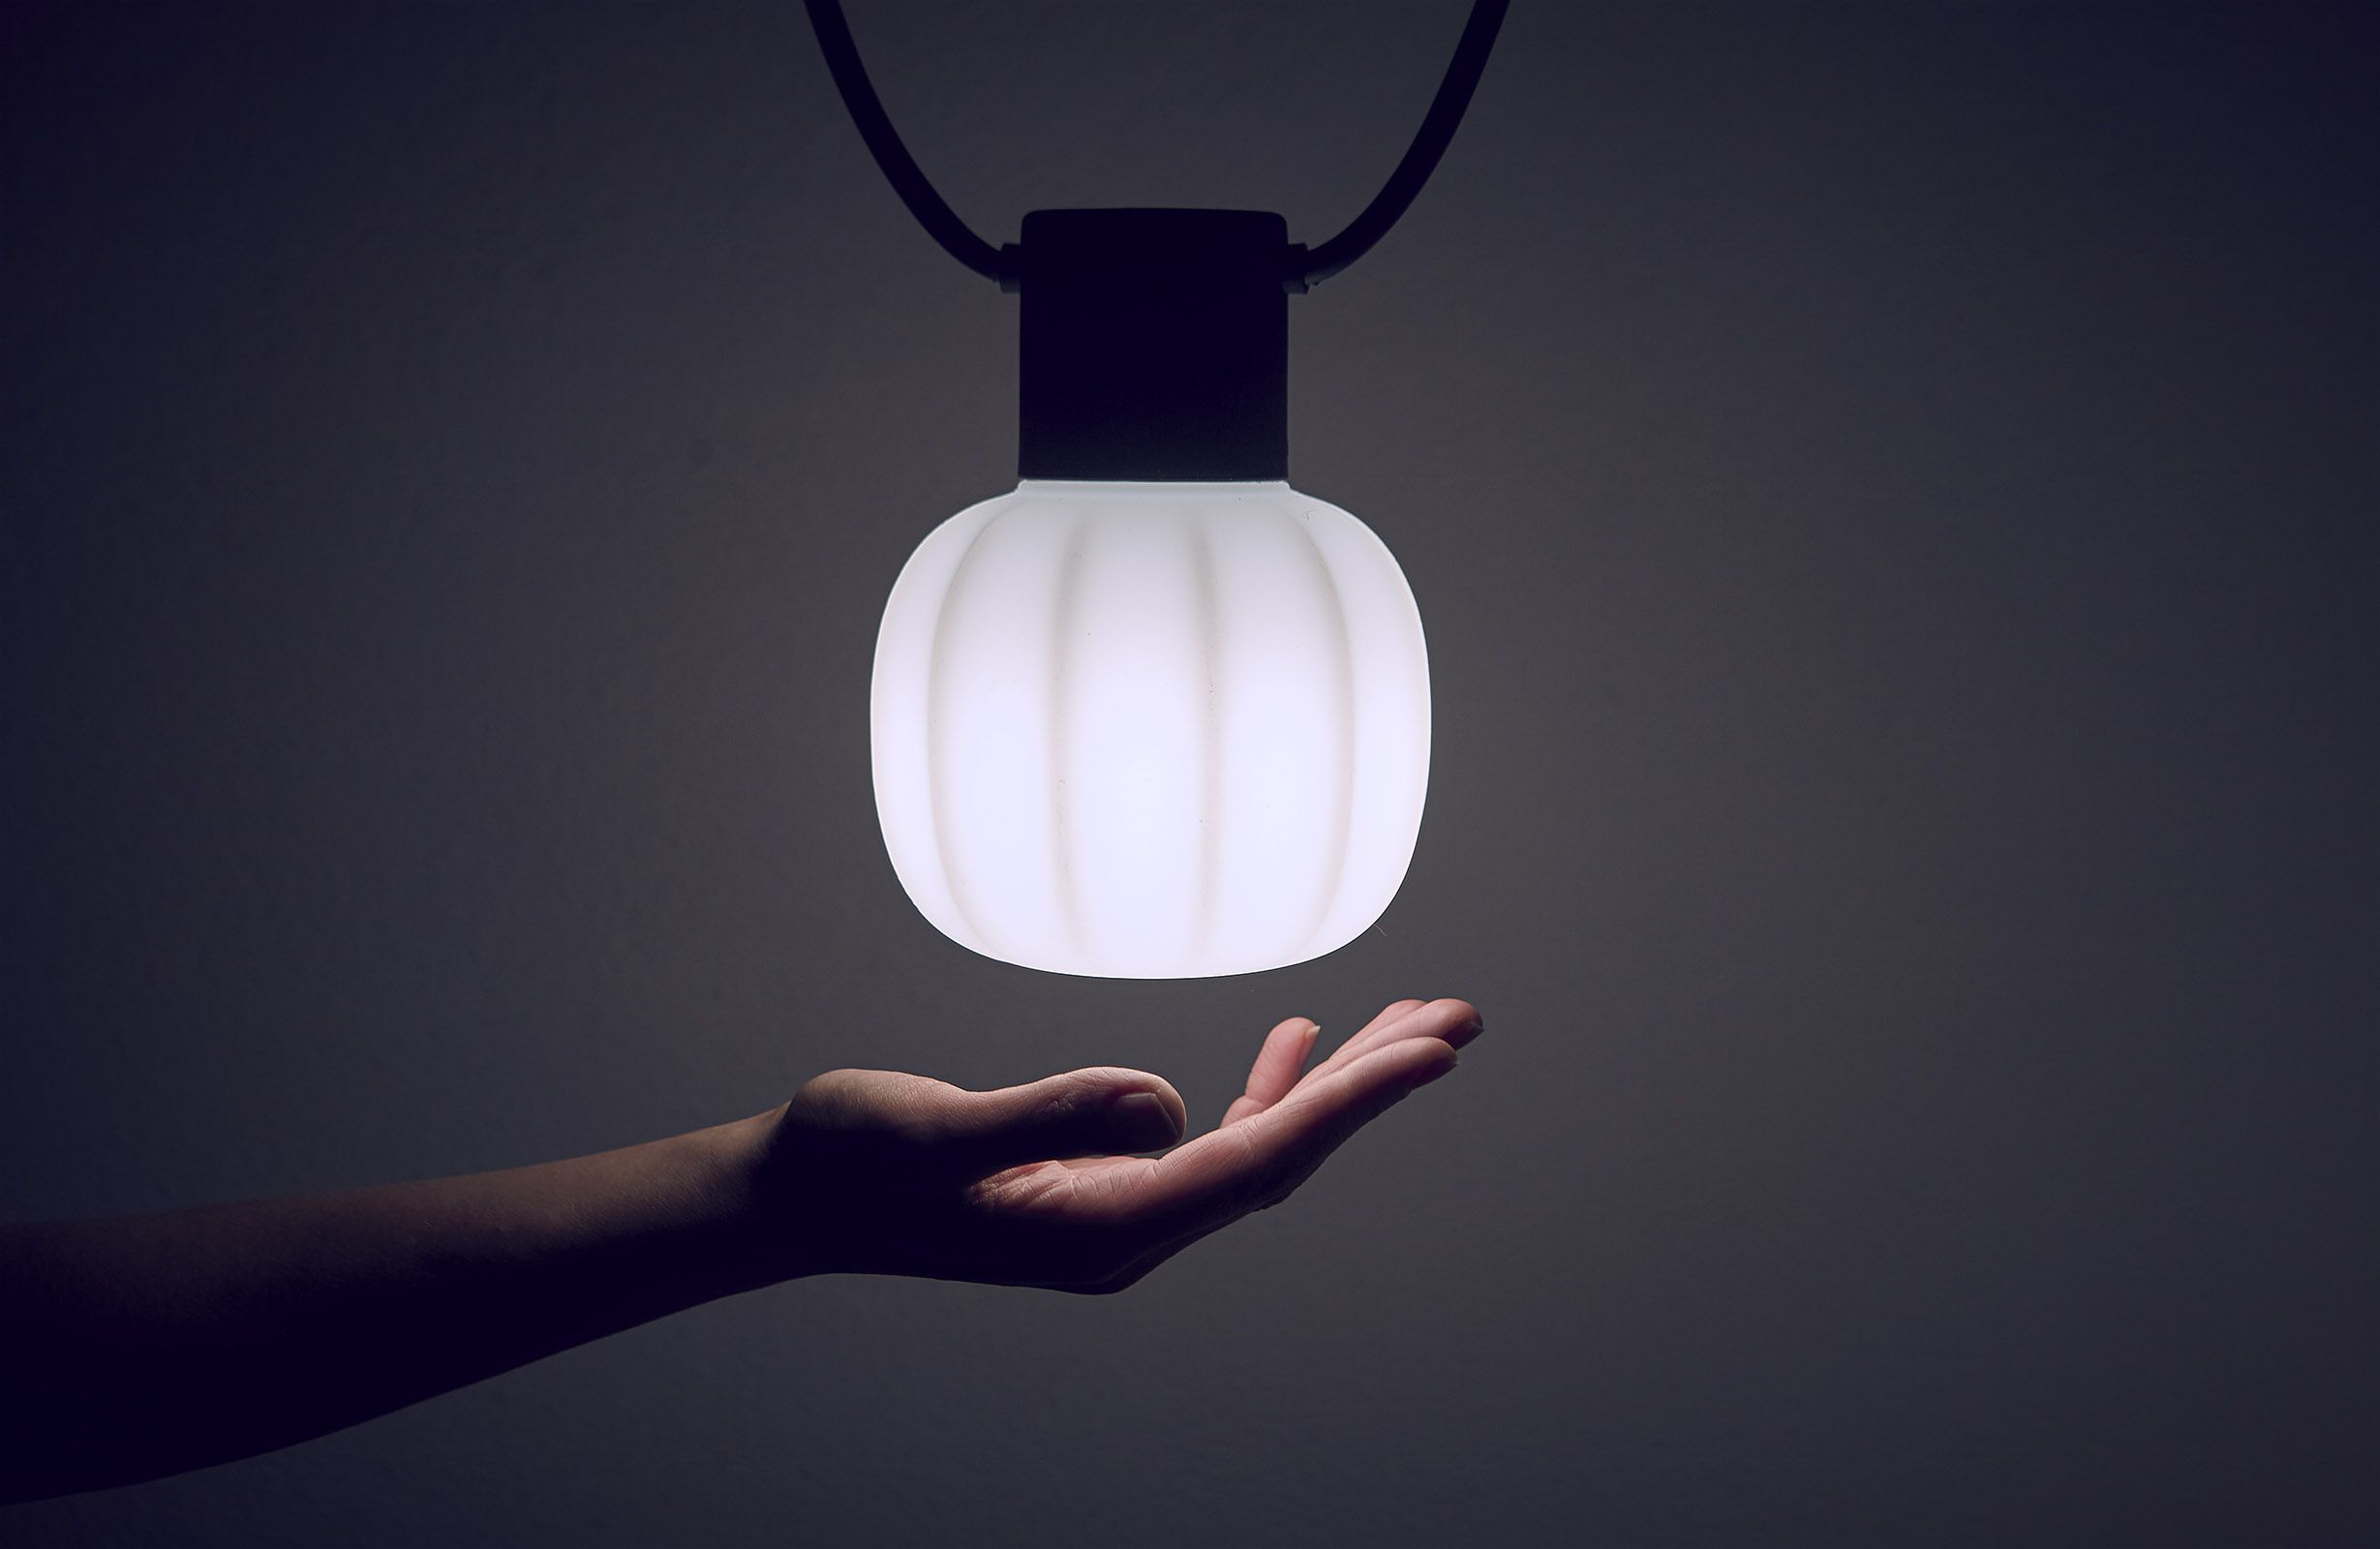 Chain Of Hanging Lights For Outdoor Use Comprised Of 5 Or 10 Light Points Fixed At A Distance Of 100 Cm One From The Other O Lampade A Sospensione Lampade Luci